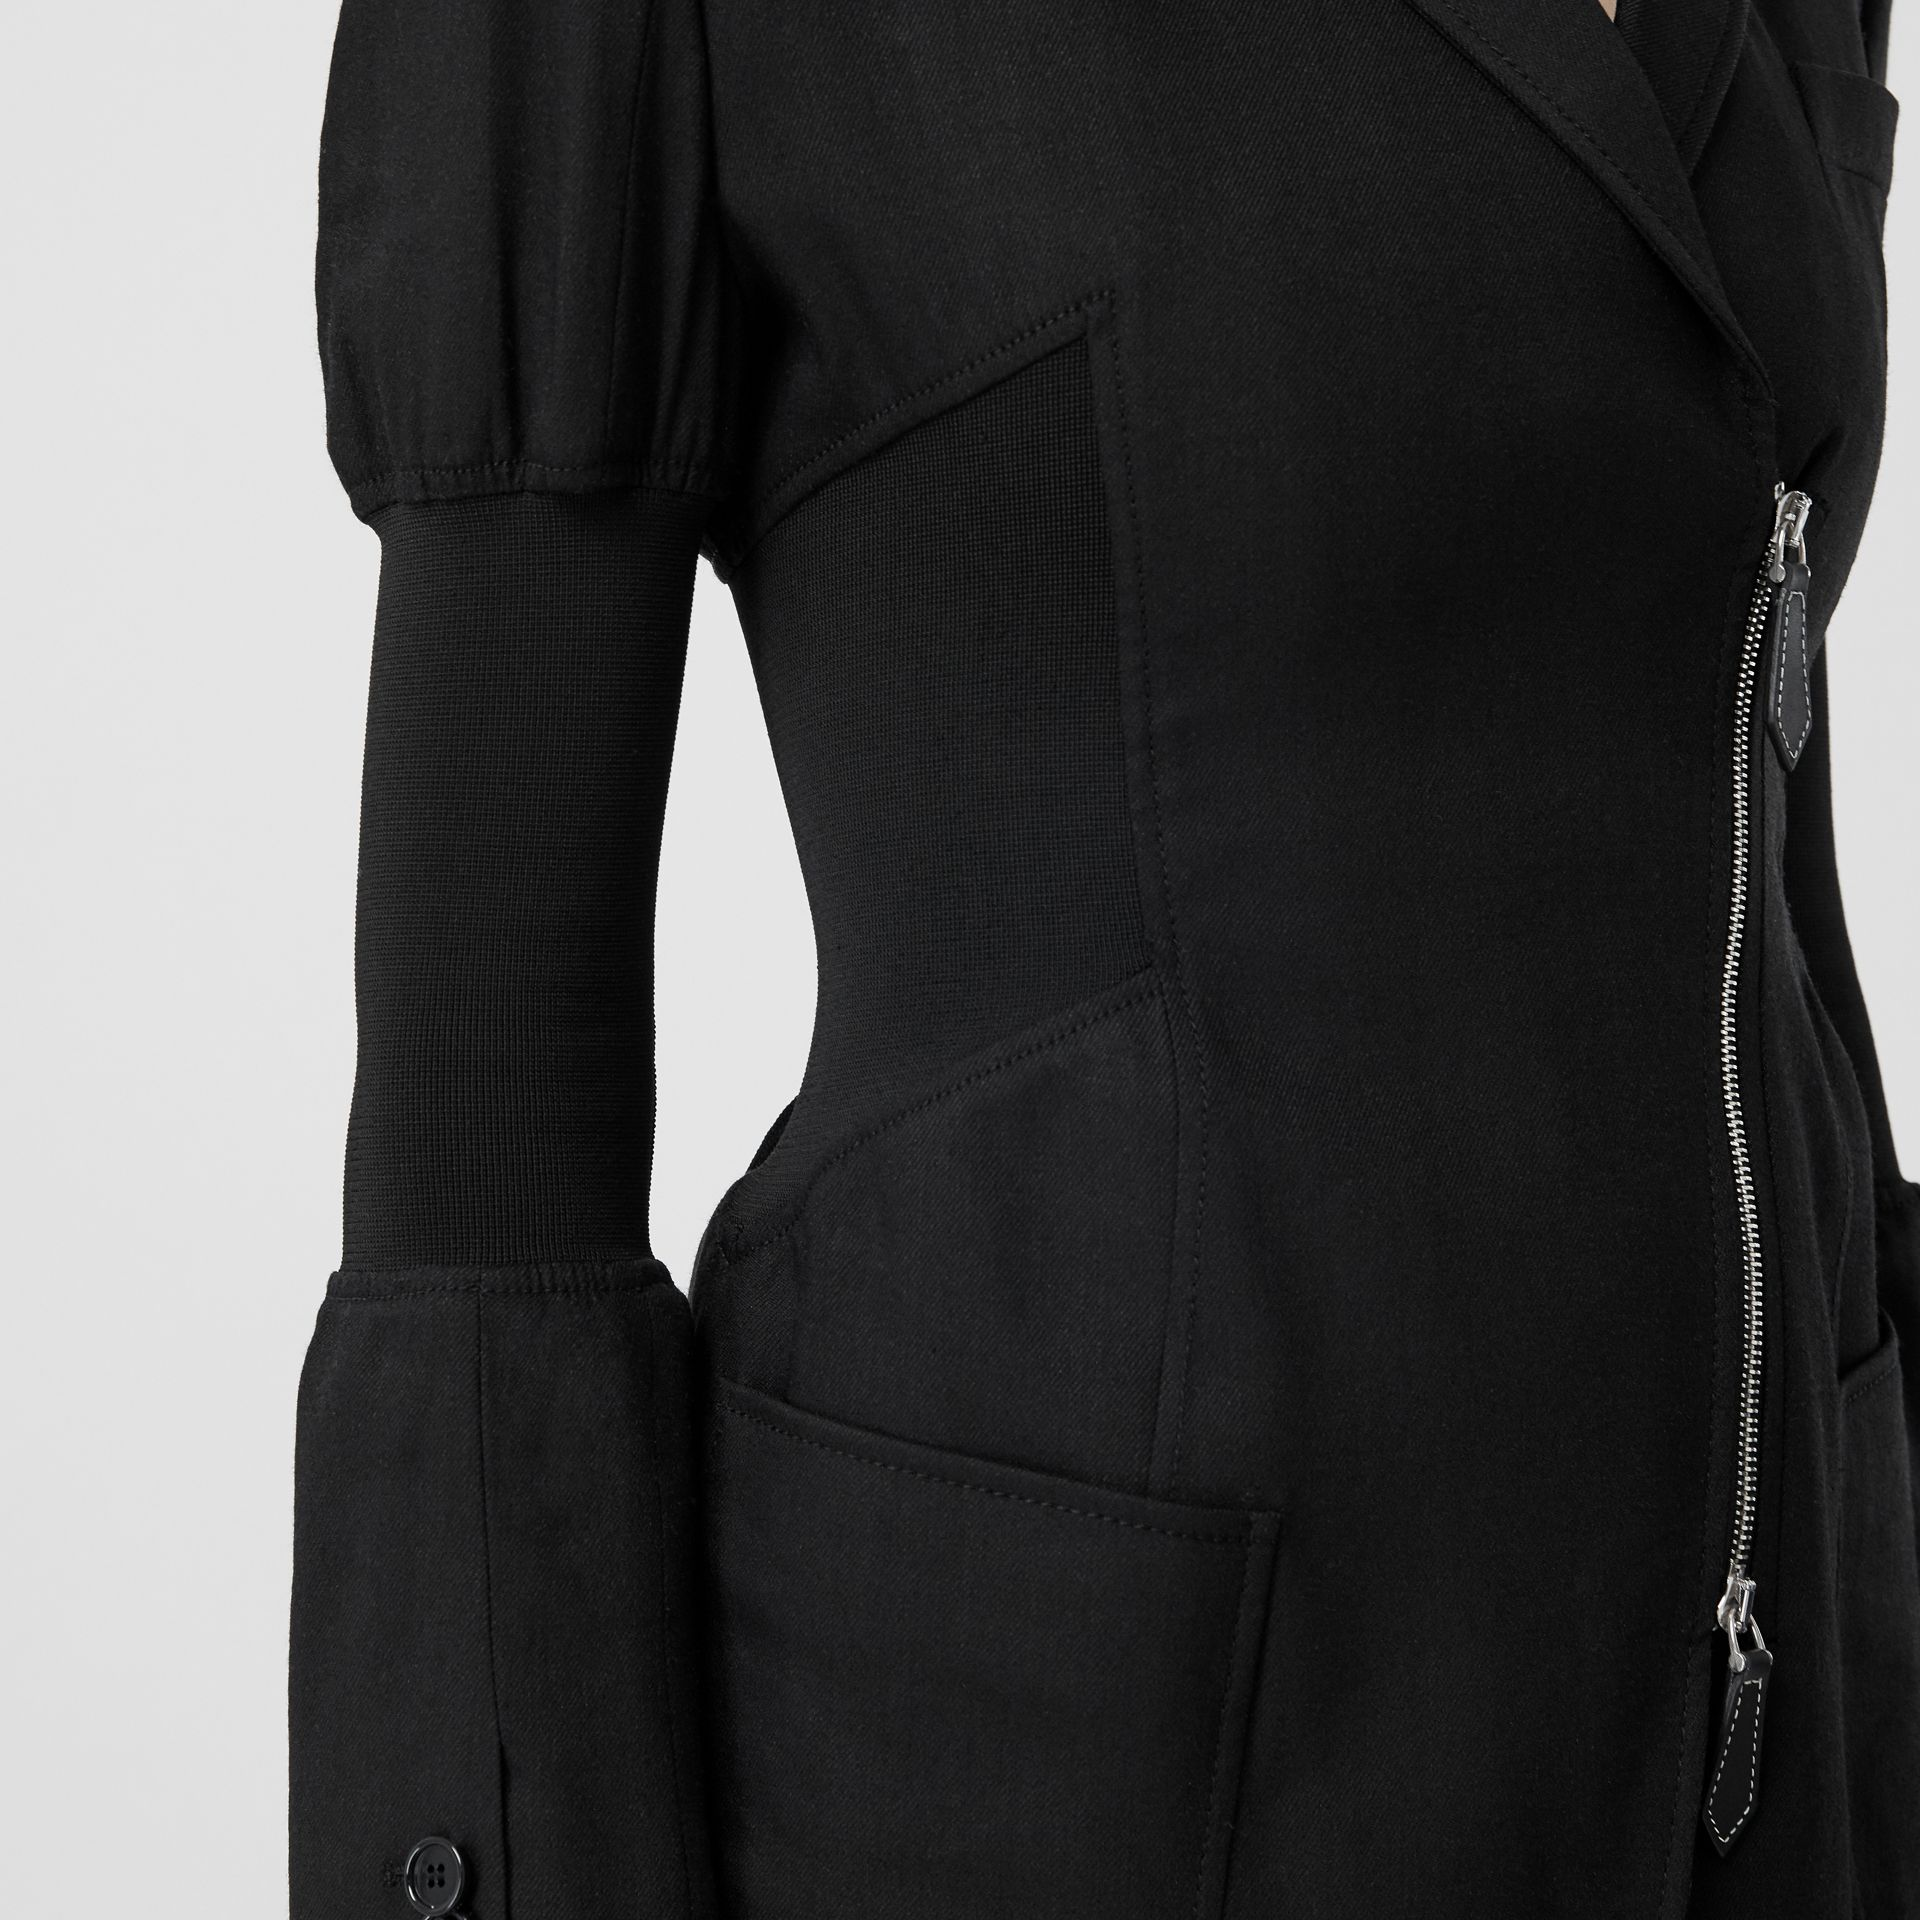 Technical Twill Reconstructed Blazer in Black - Women | Burberry - gallery image 5